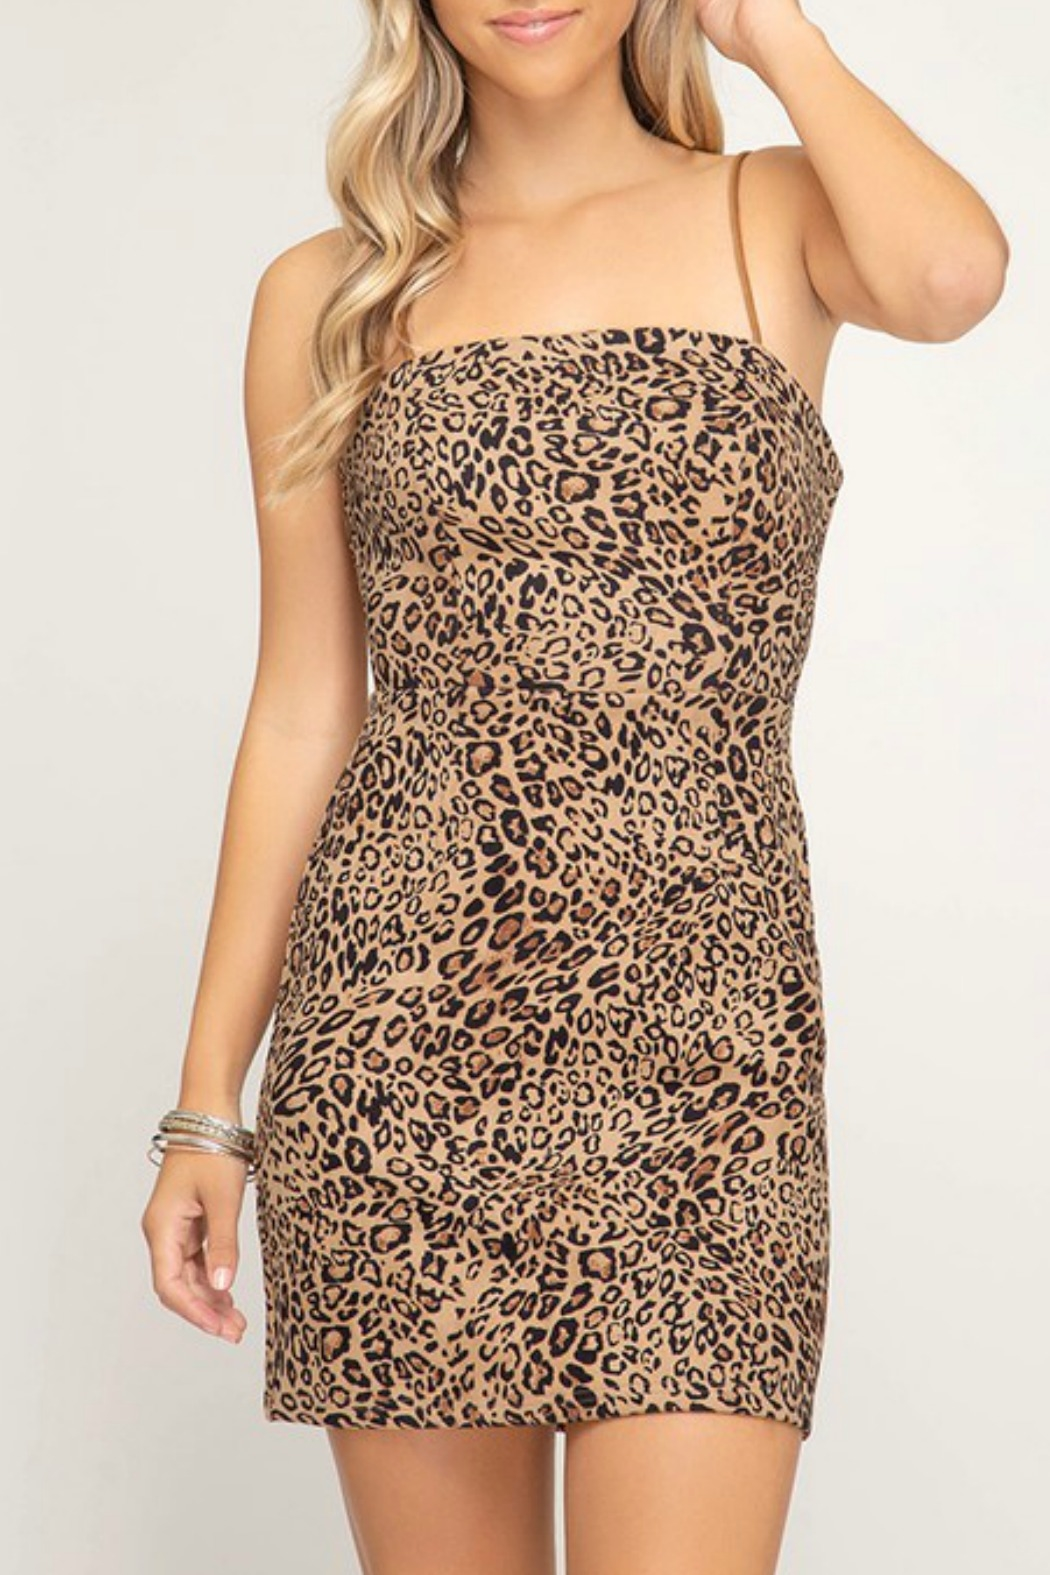 She + Sky Leopard Print Dress - Main Image